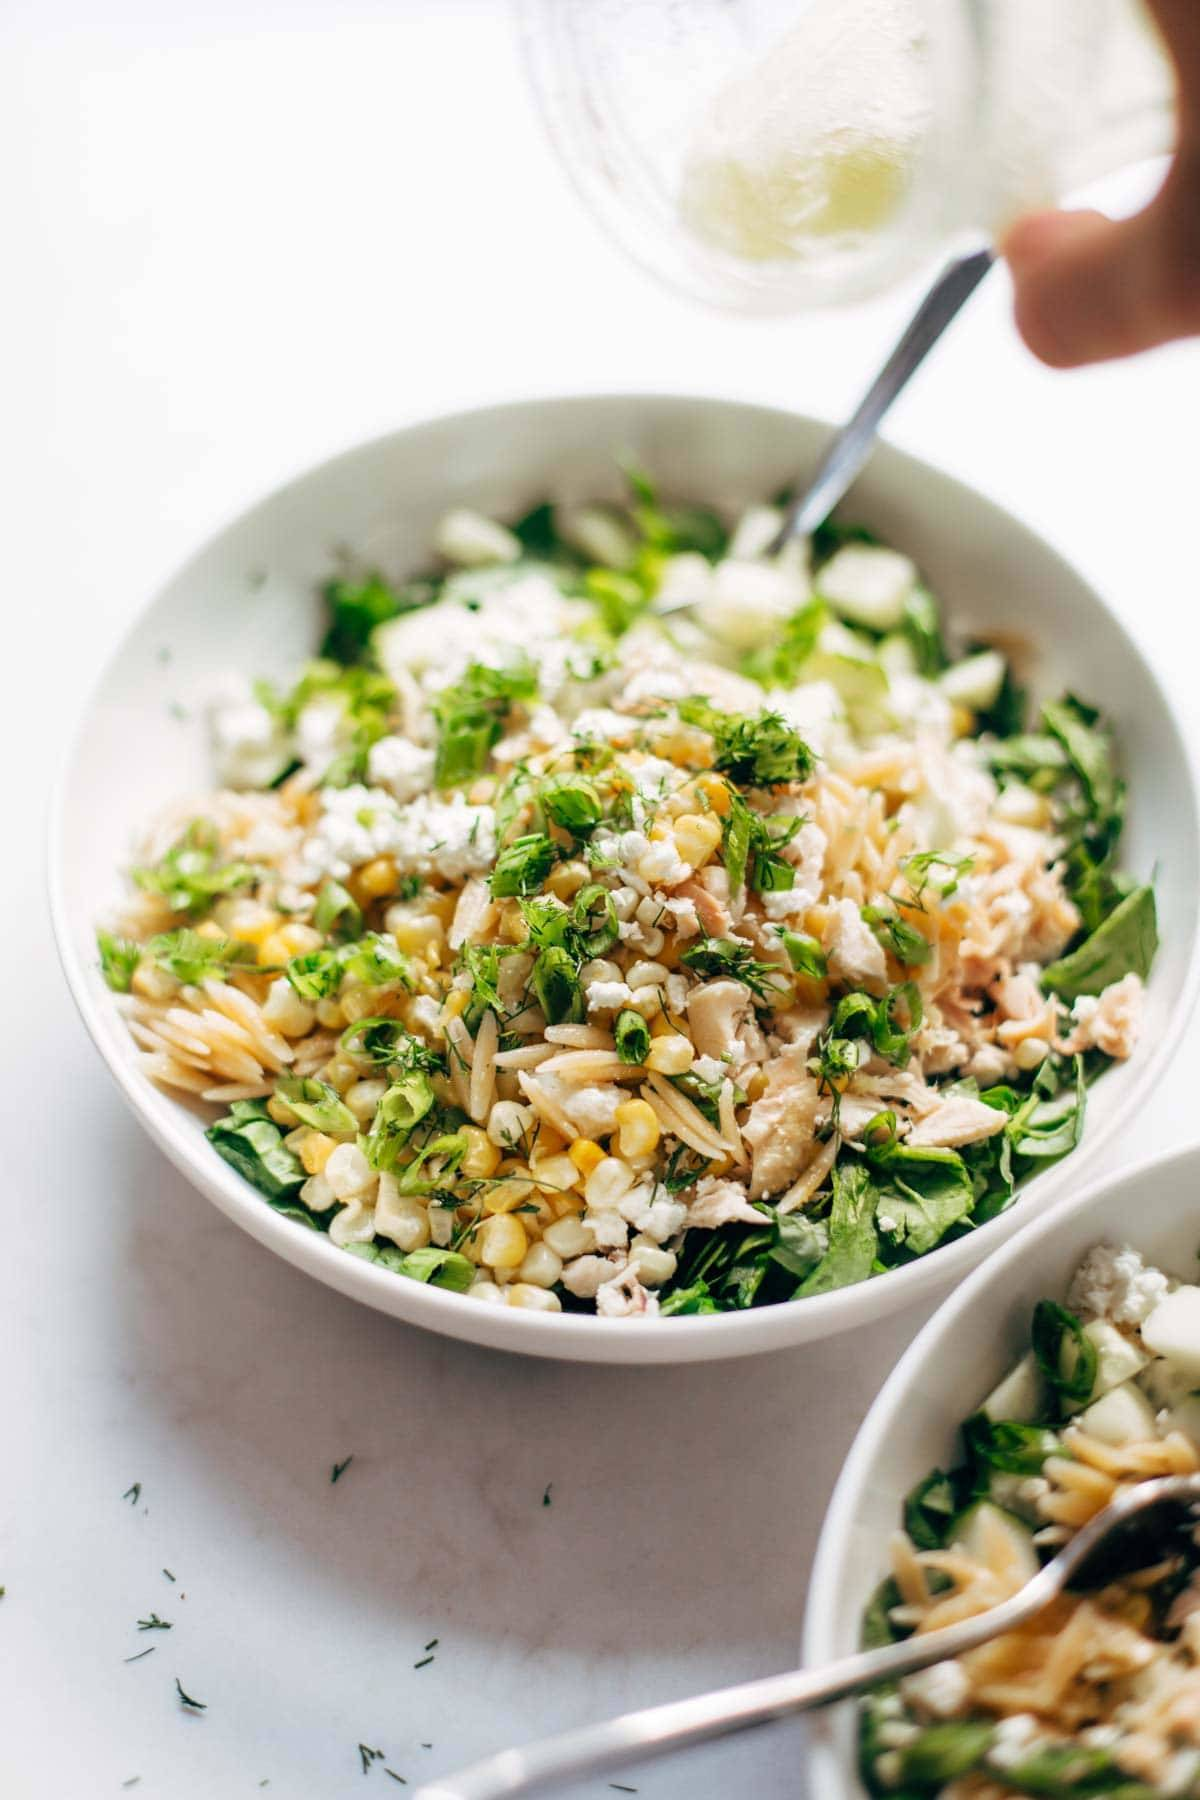 Orzo Summer Salad in a bowl with a fork.